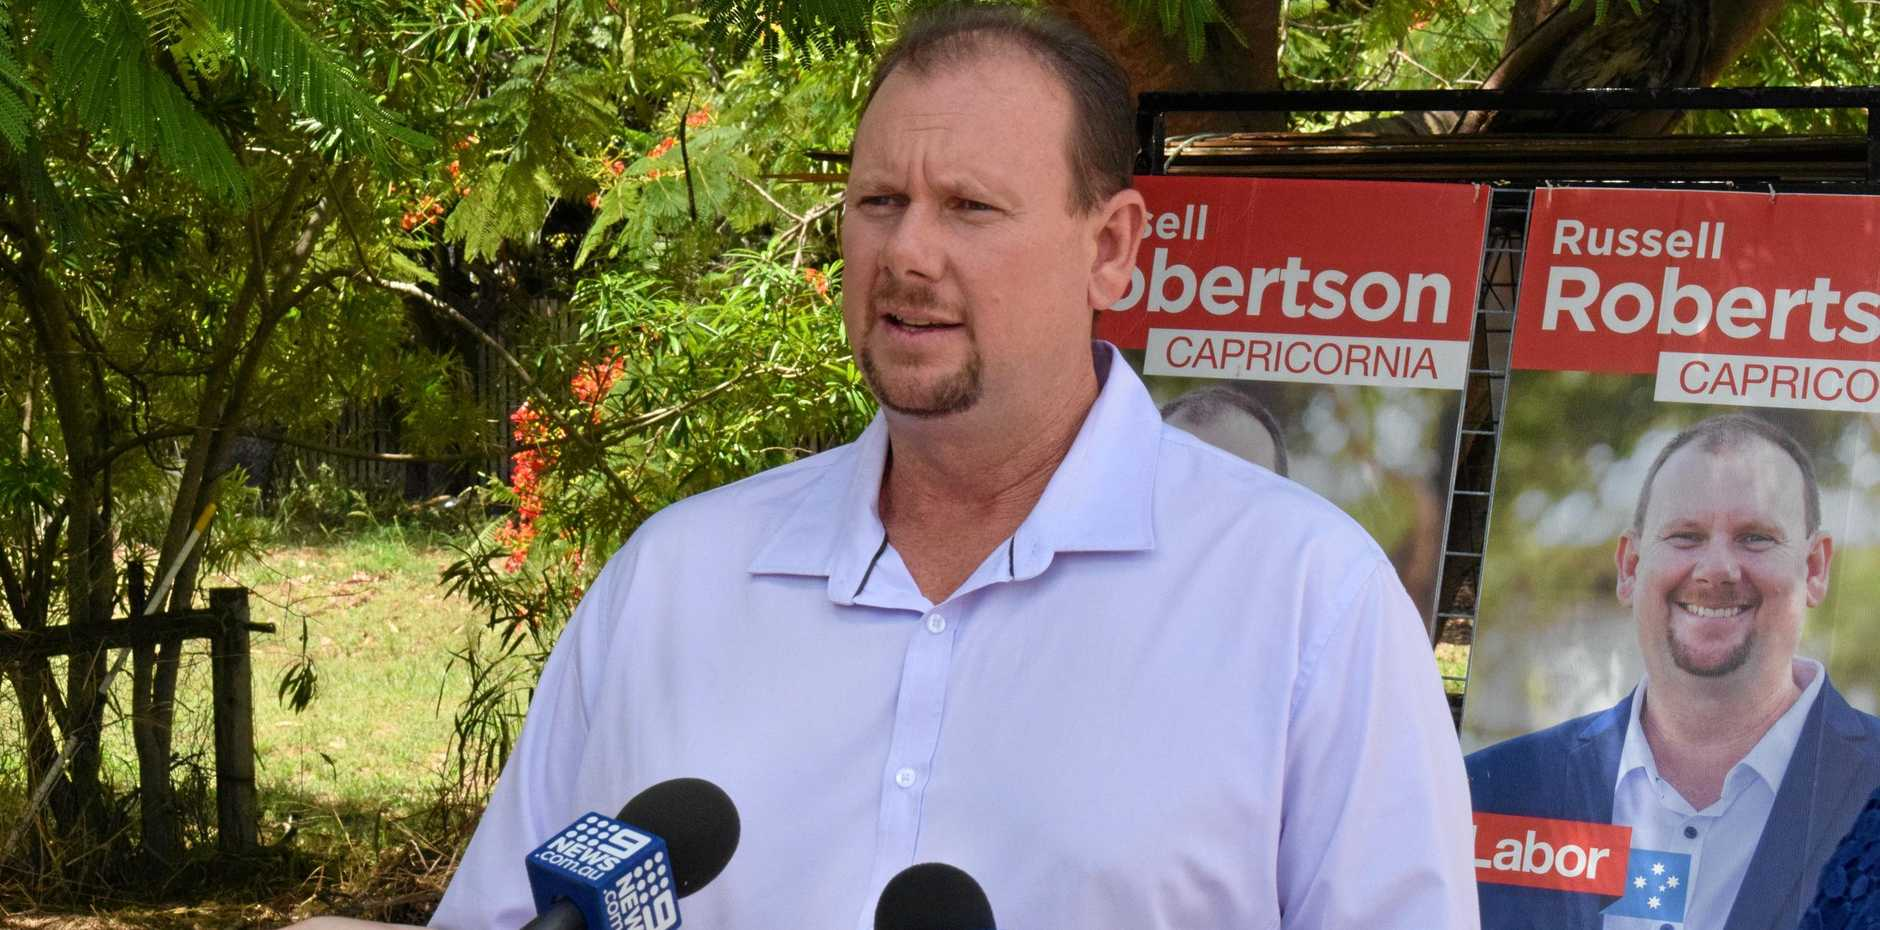 REPEATING SUPPORT: Labor's candidate for Capricornia Russell Robertson has come out again in support of the coal industry following the LNP's accusations that Labor was waging a war against coal.